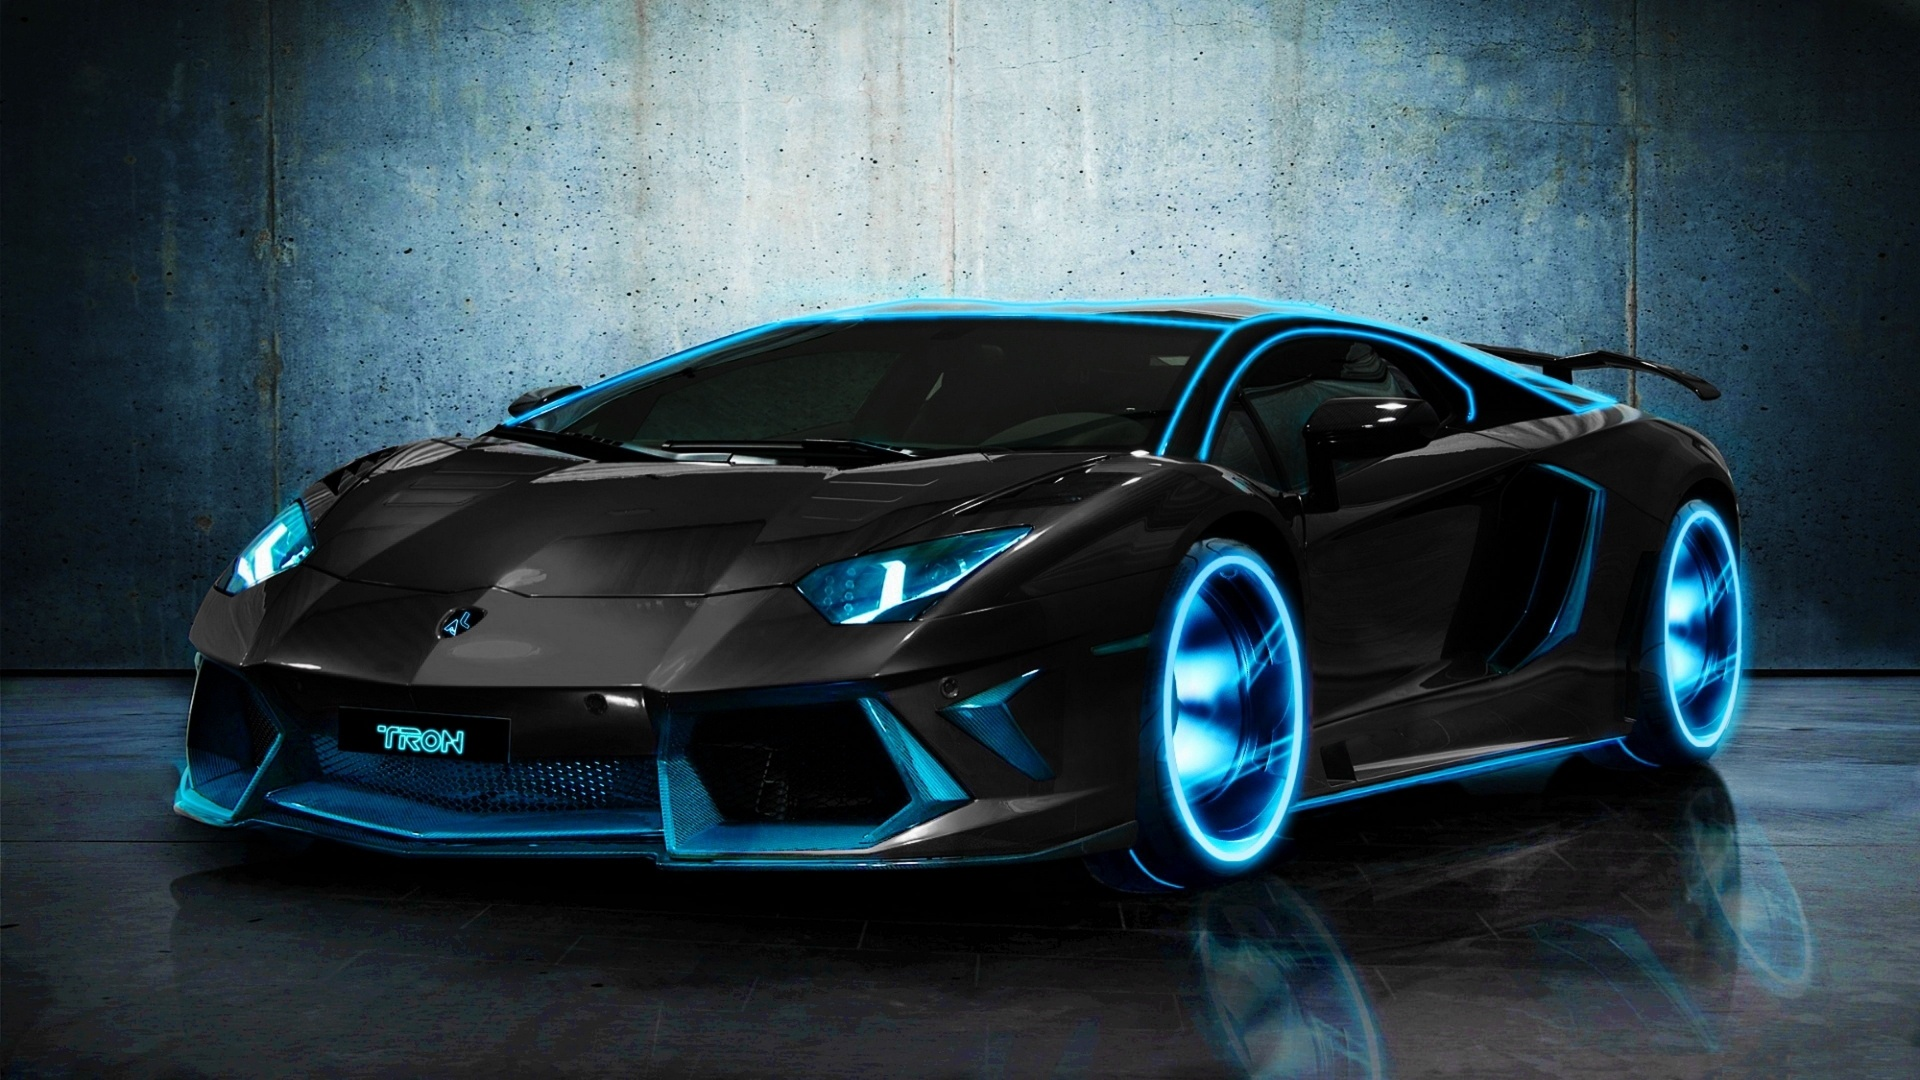 ... Aventador Car Wallpaper 1920x1080 HD Wallpaper Cars / Lamborghini